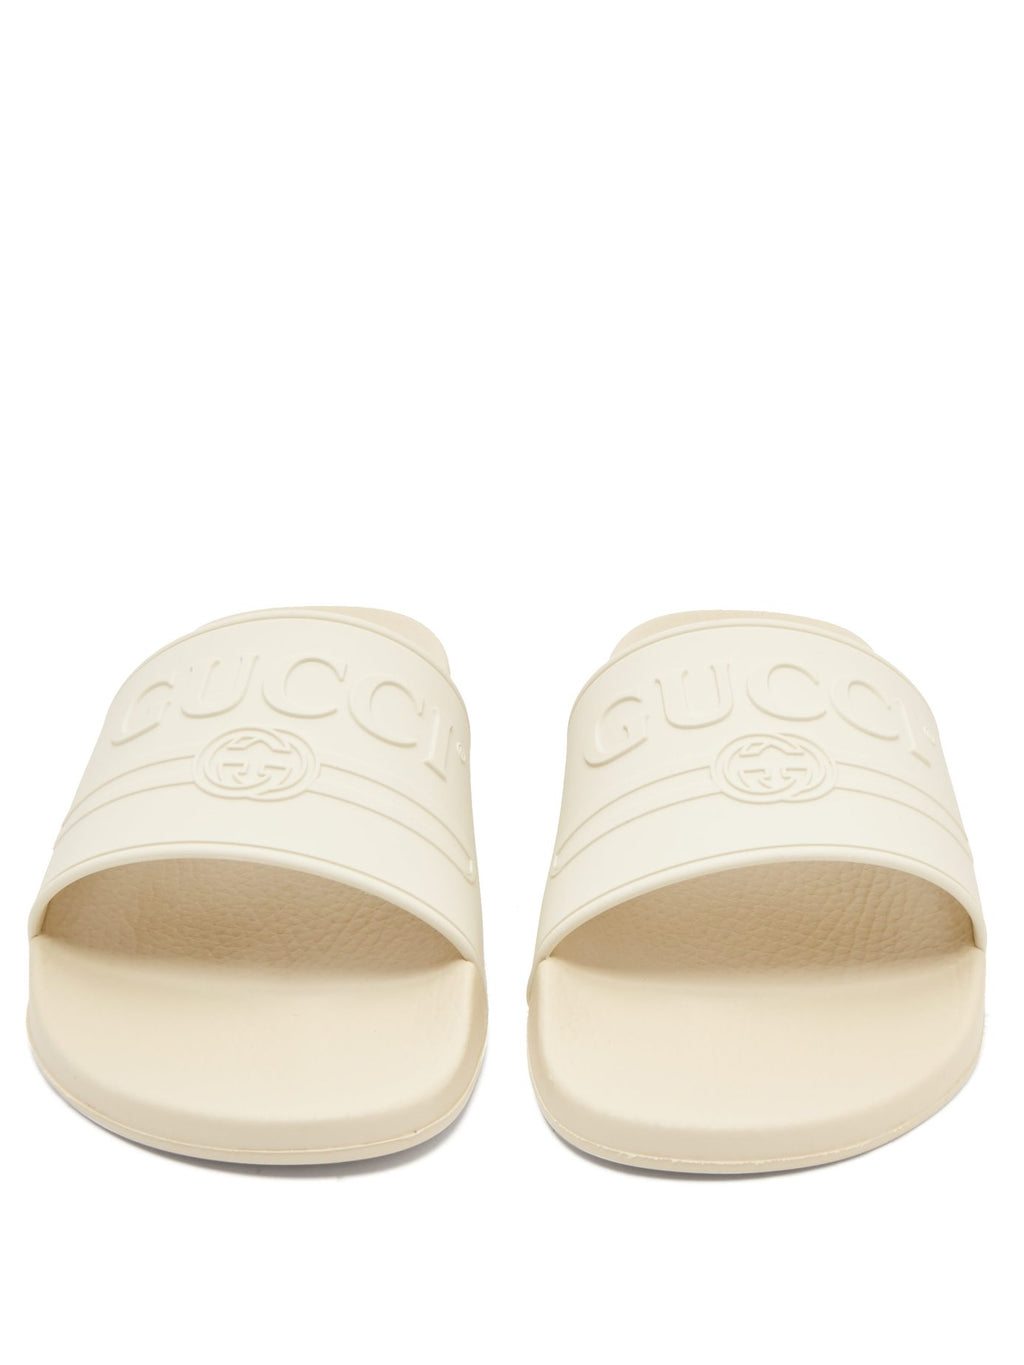 fcacf82c74b Gucci Rubber Logo Pool Slides White SS18 – The Luxury Shopper